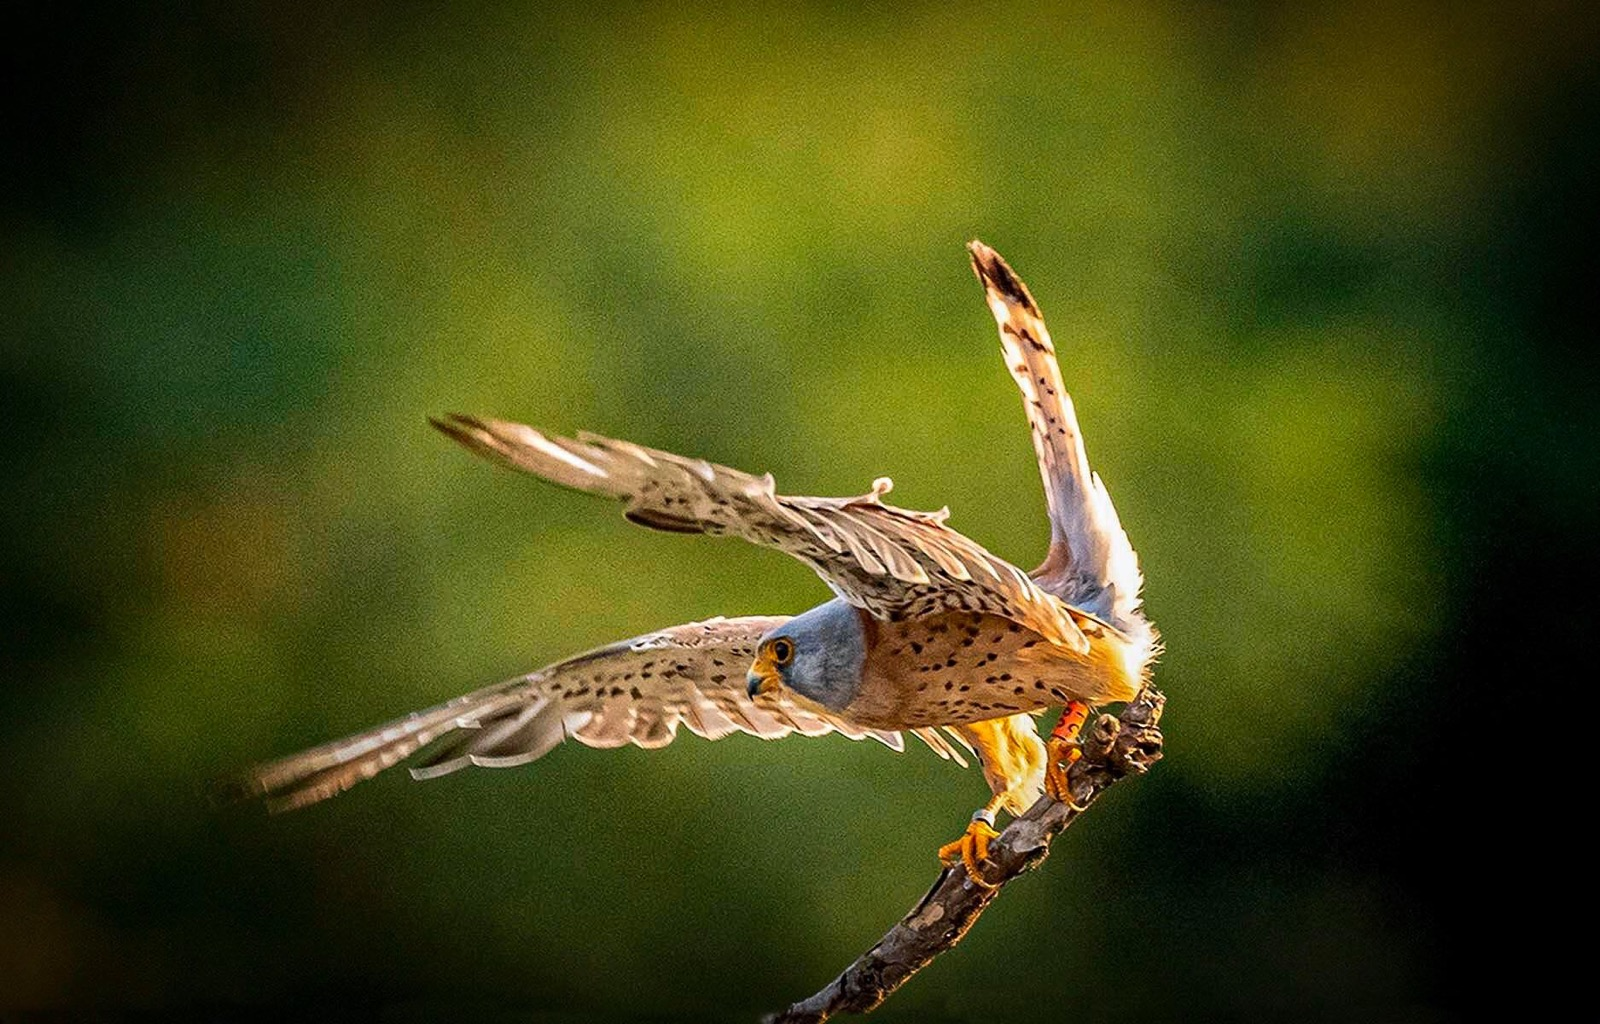 The saker falcon is a large species of falcon.